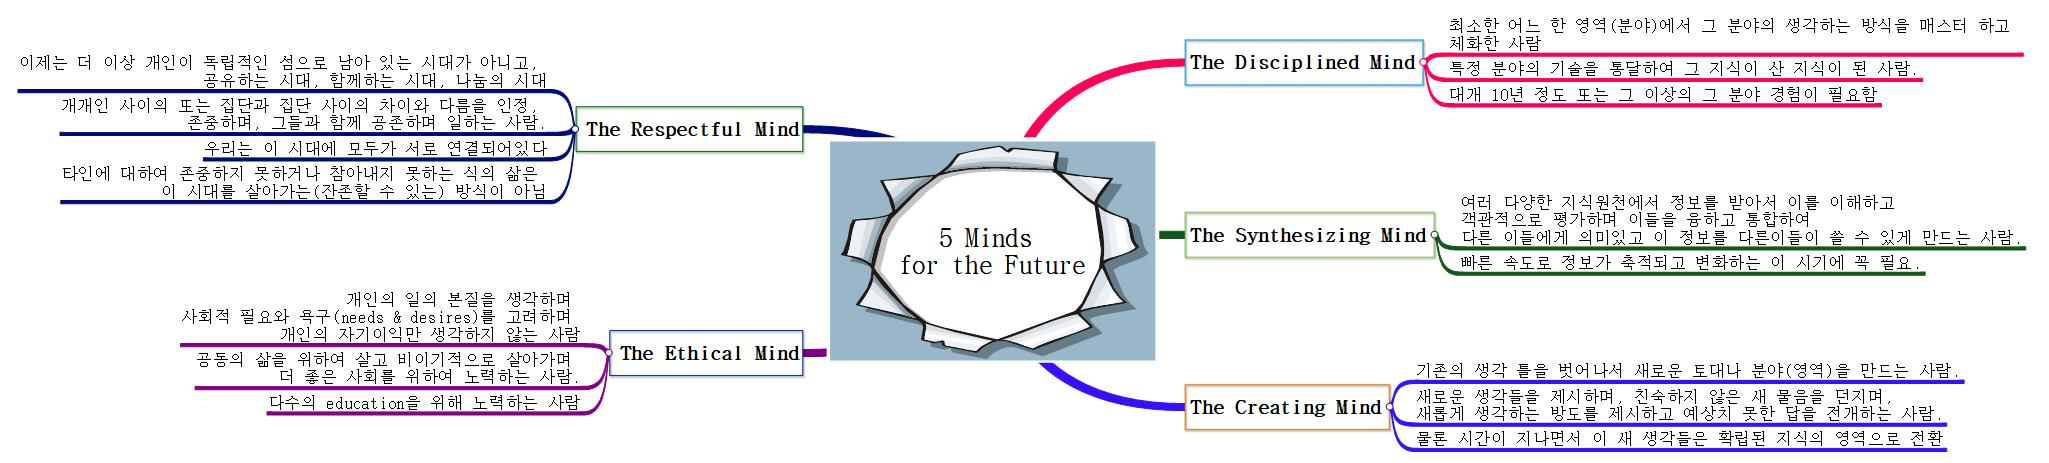 5 Minds  for the Future 이미지